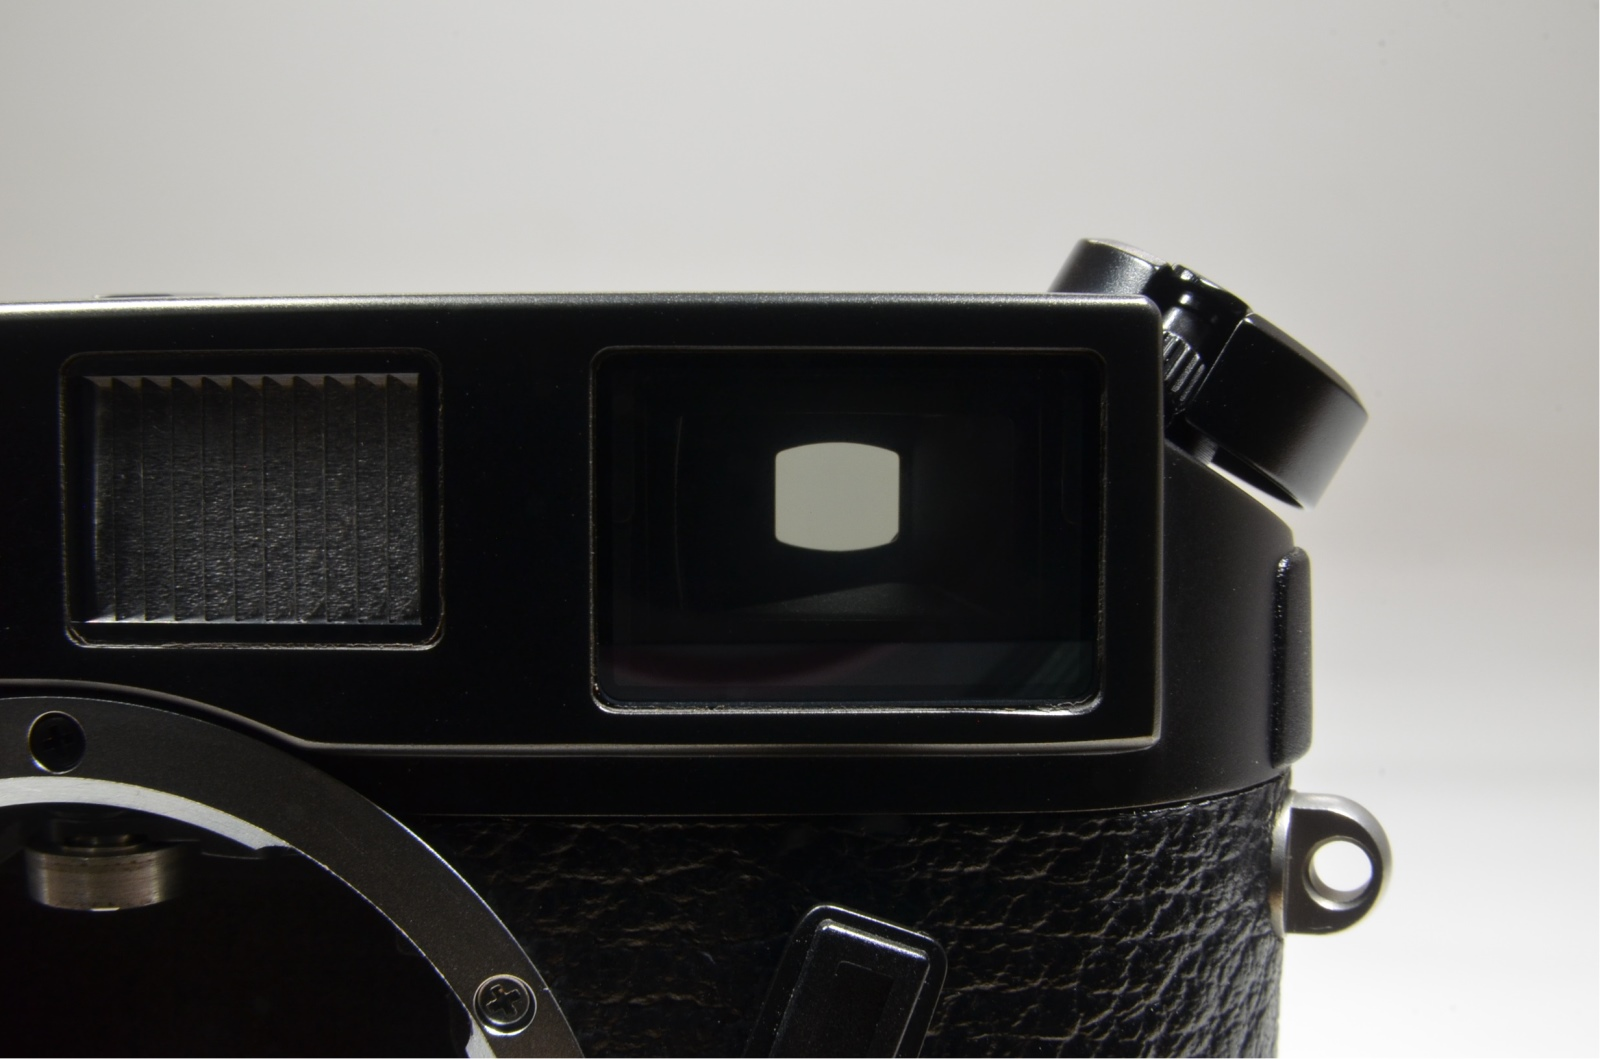 leica m6 black body in boxed 35mm rangefinder s/n 2414003 with strap